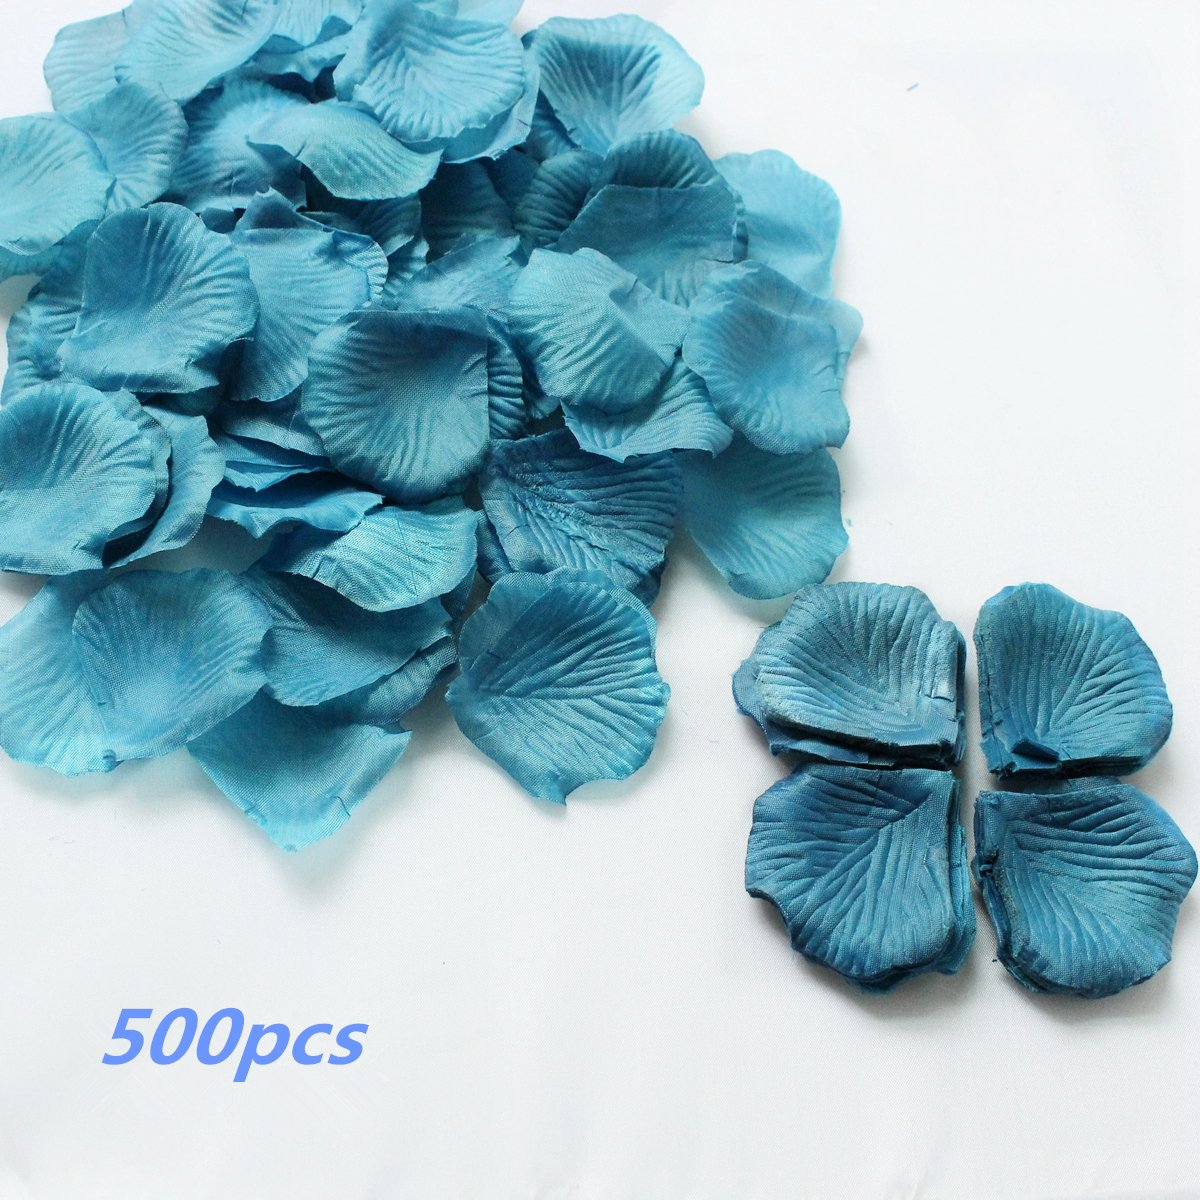 Best teal flower petals for weddings amazon dealzip inc 500pcs amazing teal blue artificial silk rose flower petals wedding table confetti bridal wedding party decorations izmirmasajfo